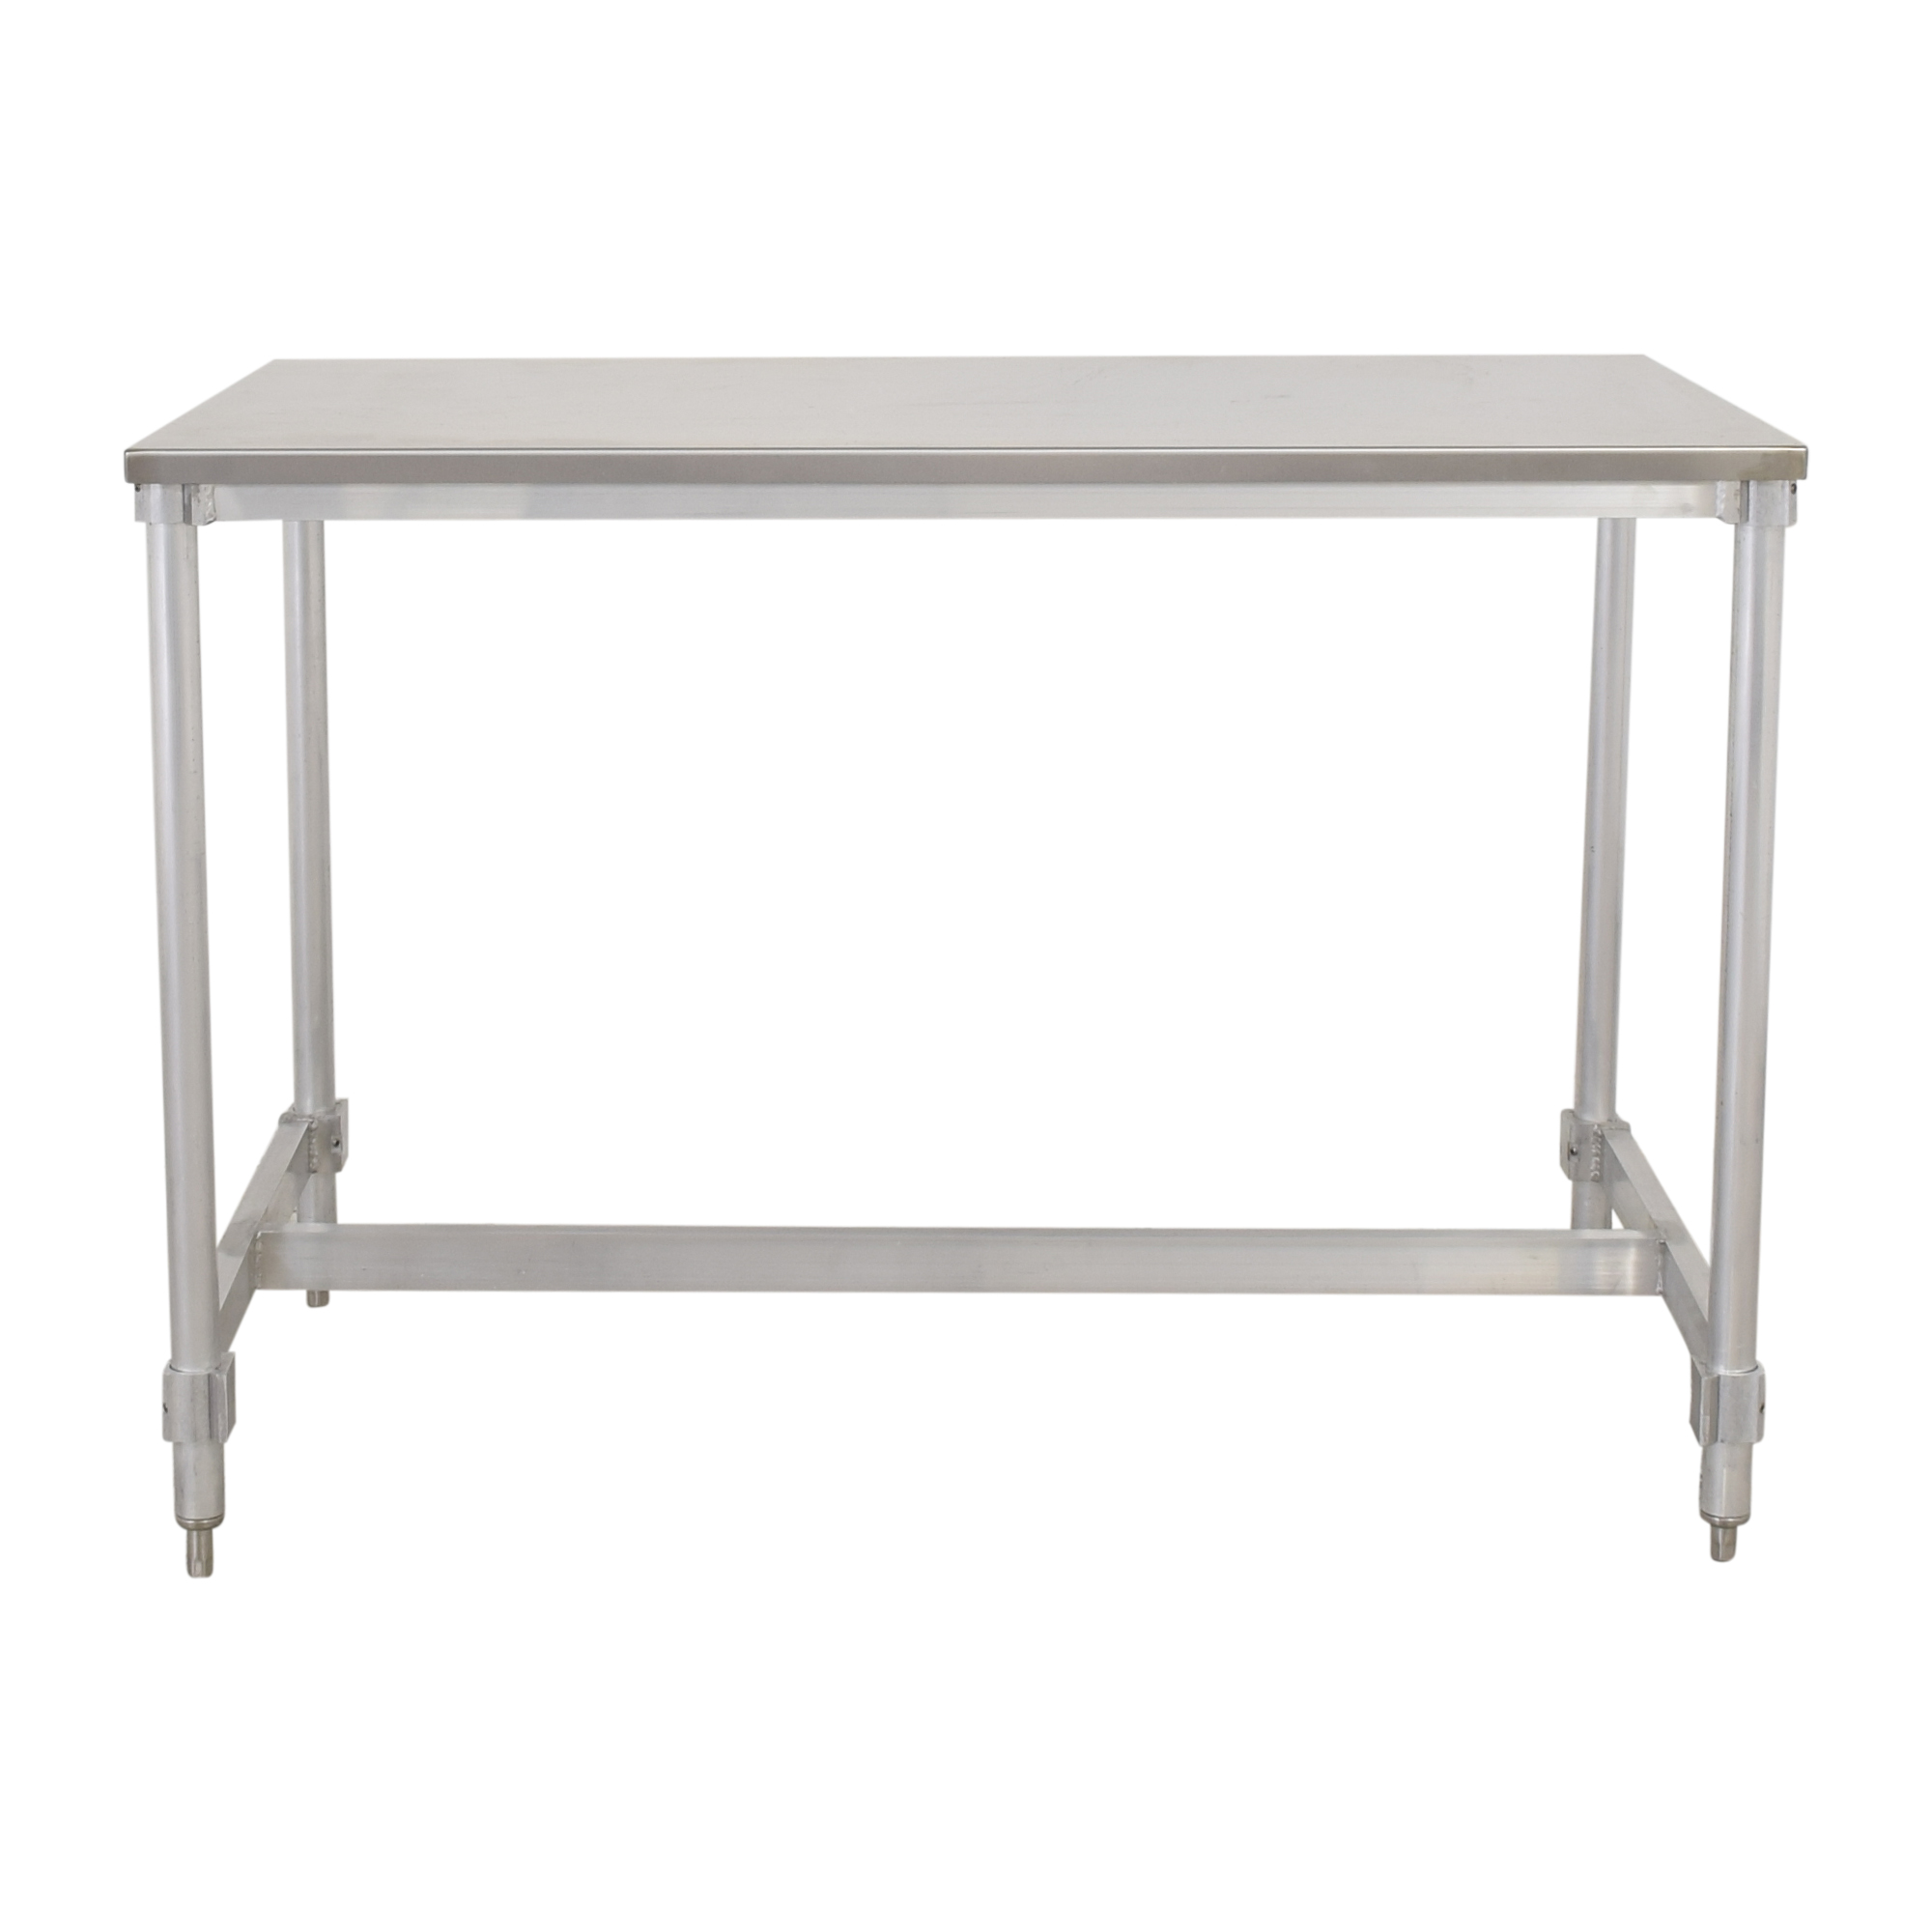 Prairie View Industries Prairie View Industries Kitchen Island Tables